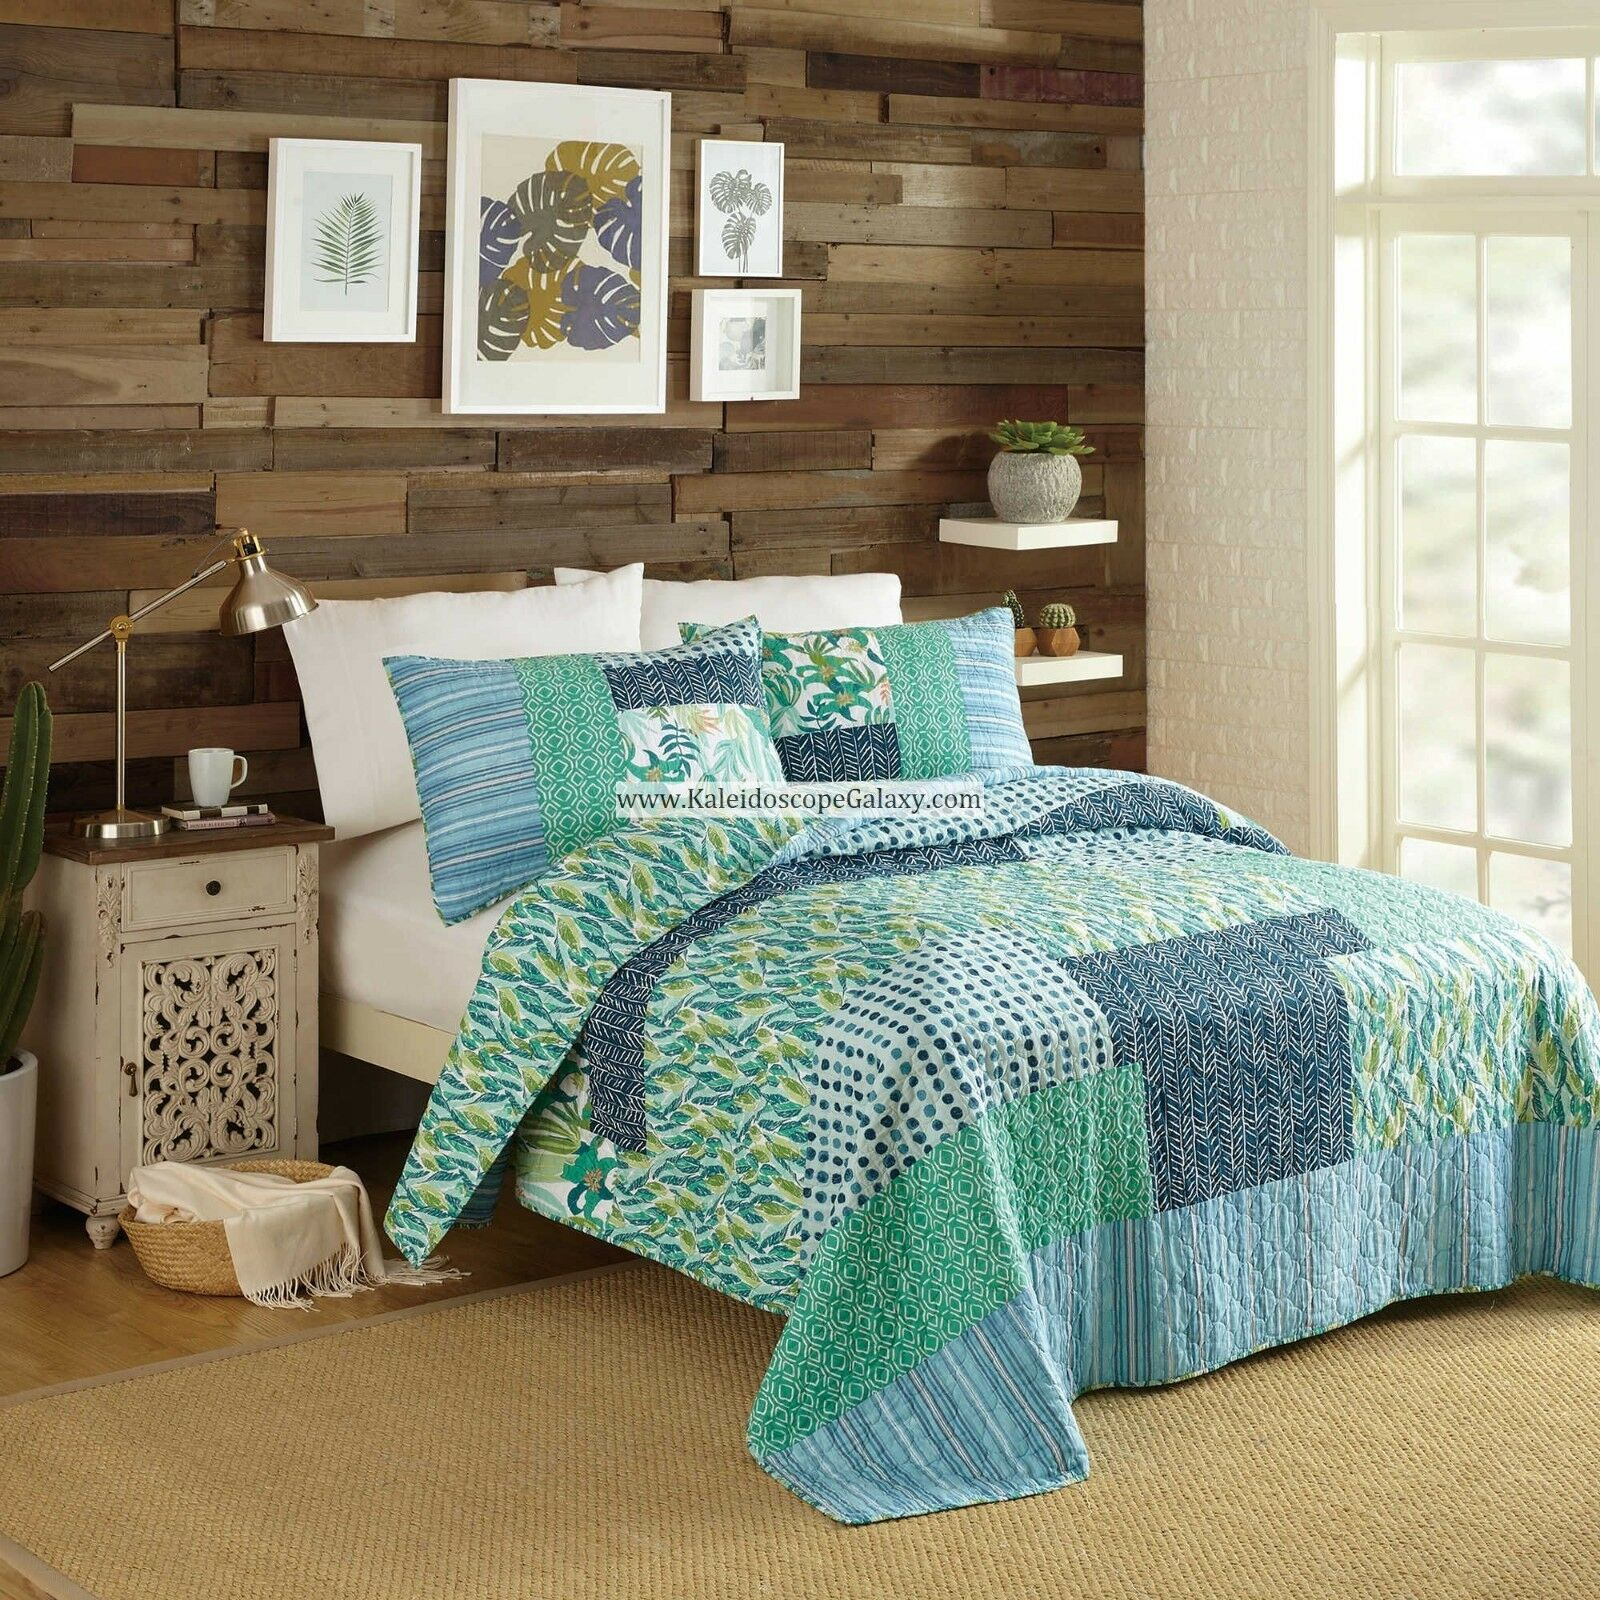 verde blu bianca PATCHWORK NATIVE SPRINGS 3PC FULL QUEEN QUILT BOHEMIAN ABSTRACT